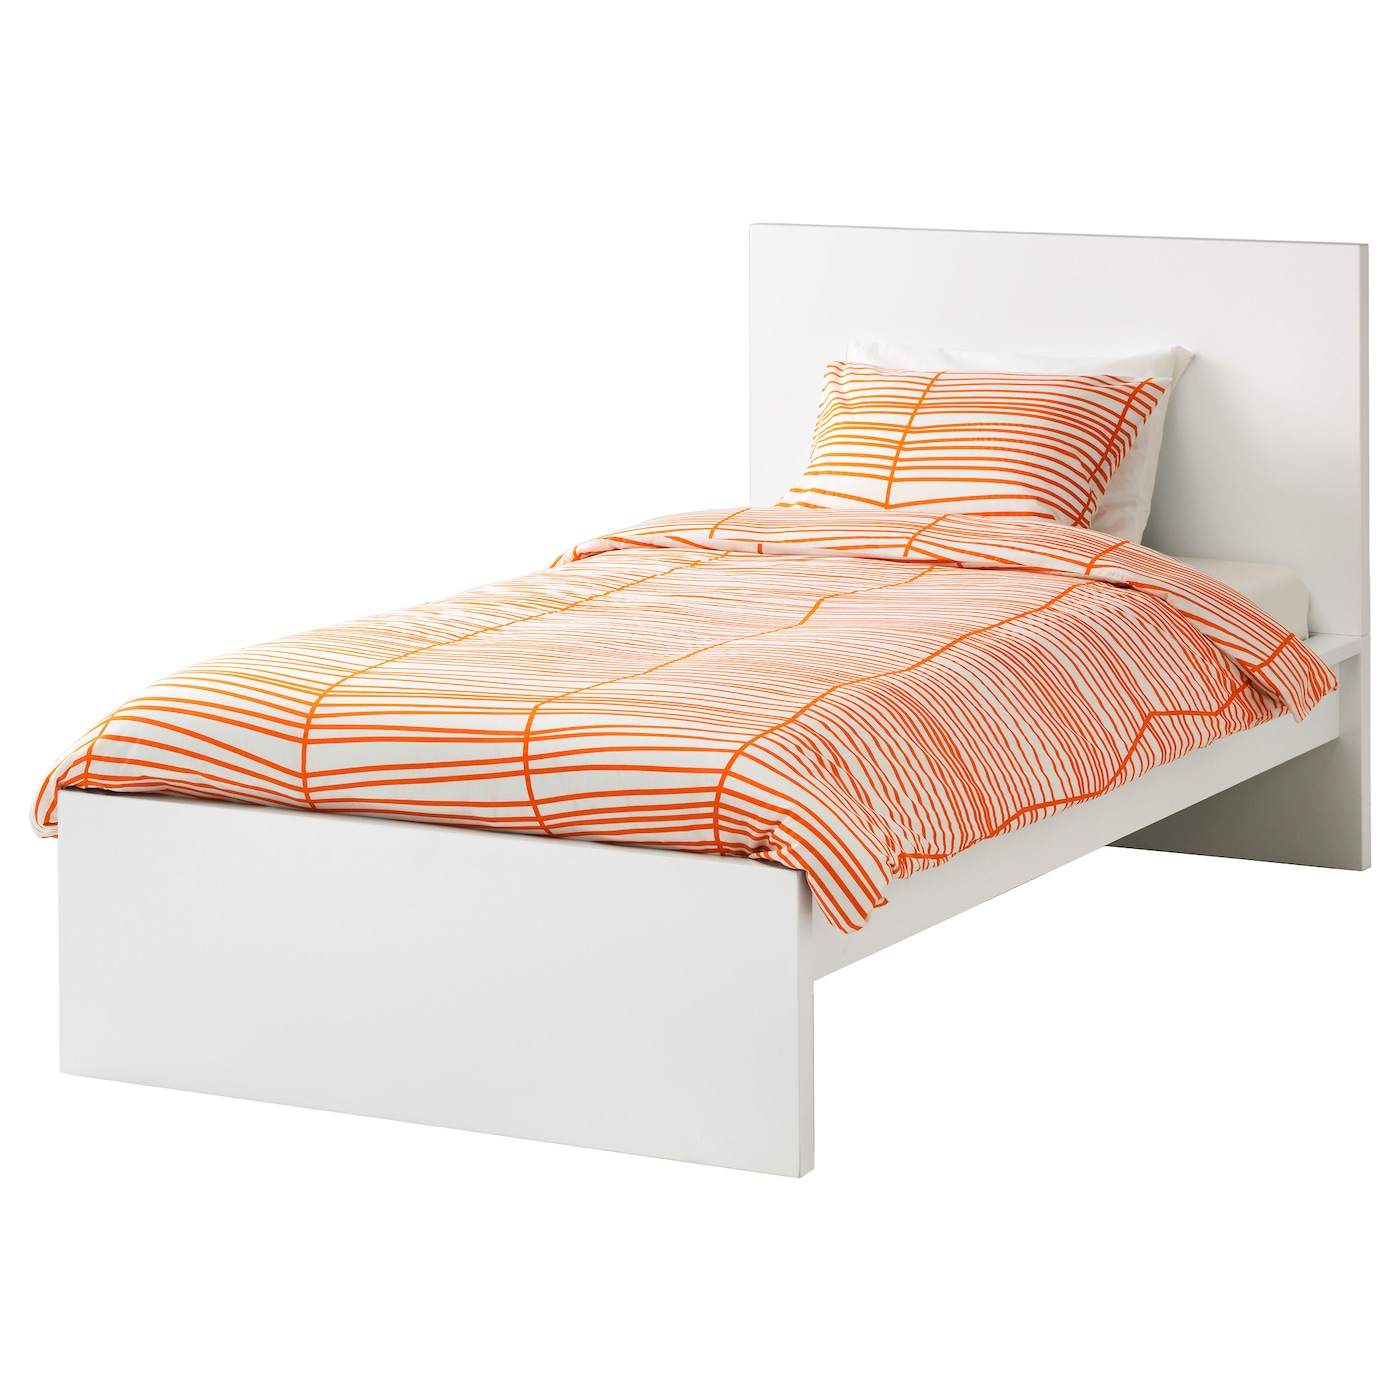 malm bed frame high white lur y standard single ikea. Black Bedroom Furniture Sets. Home Design Ideas